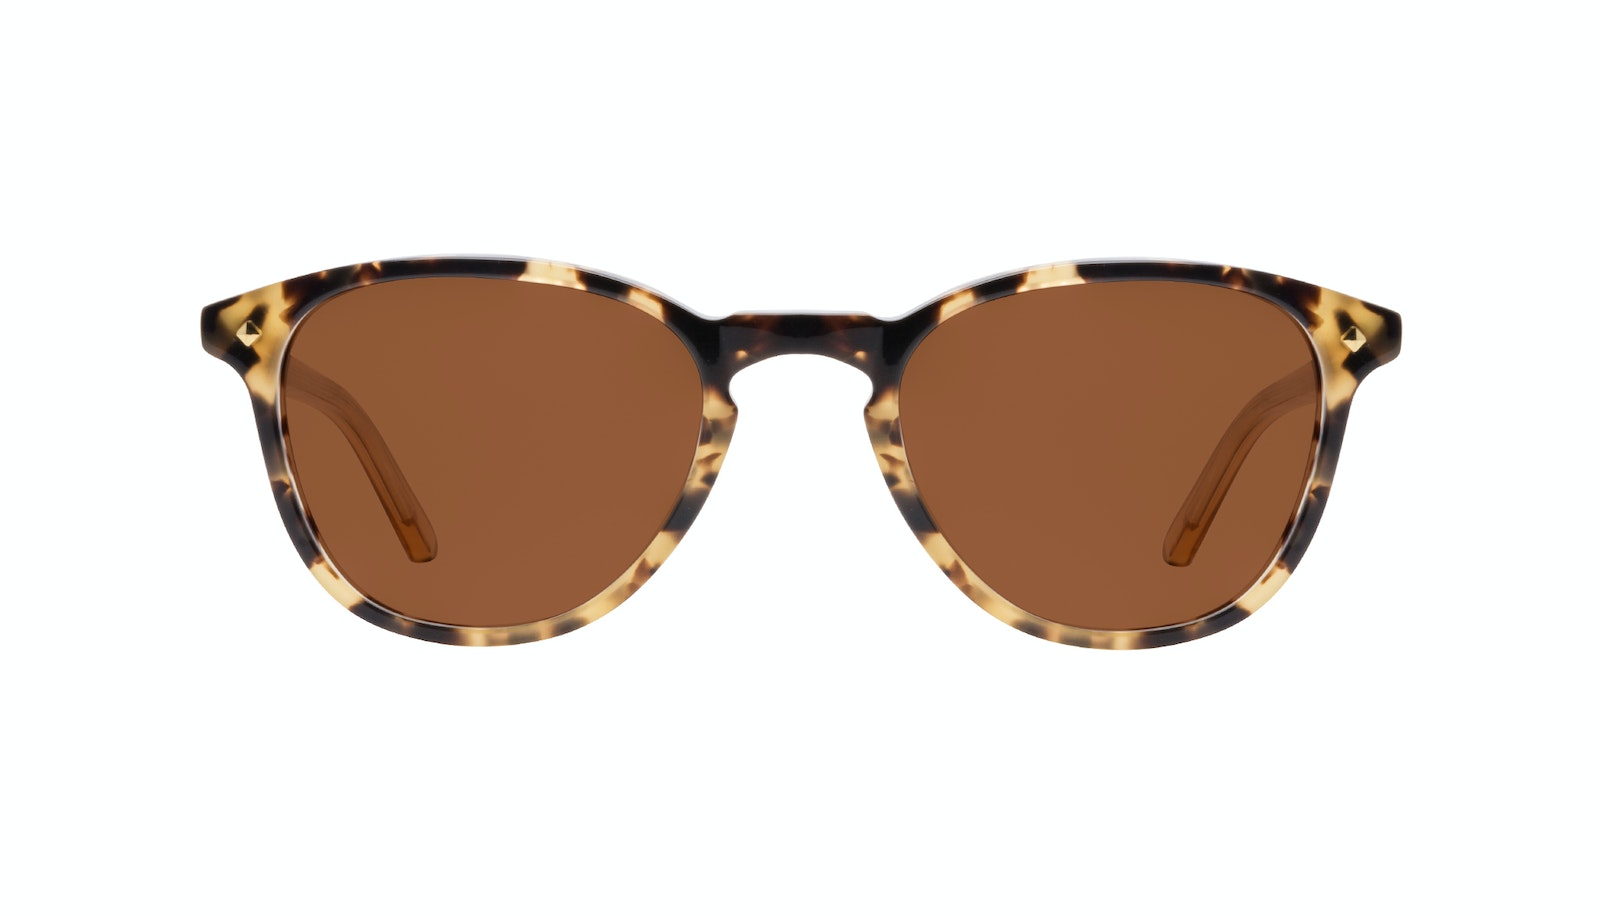 Affordable Fashion Glasses Round Sunglasses Women Crush Bingal